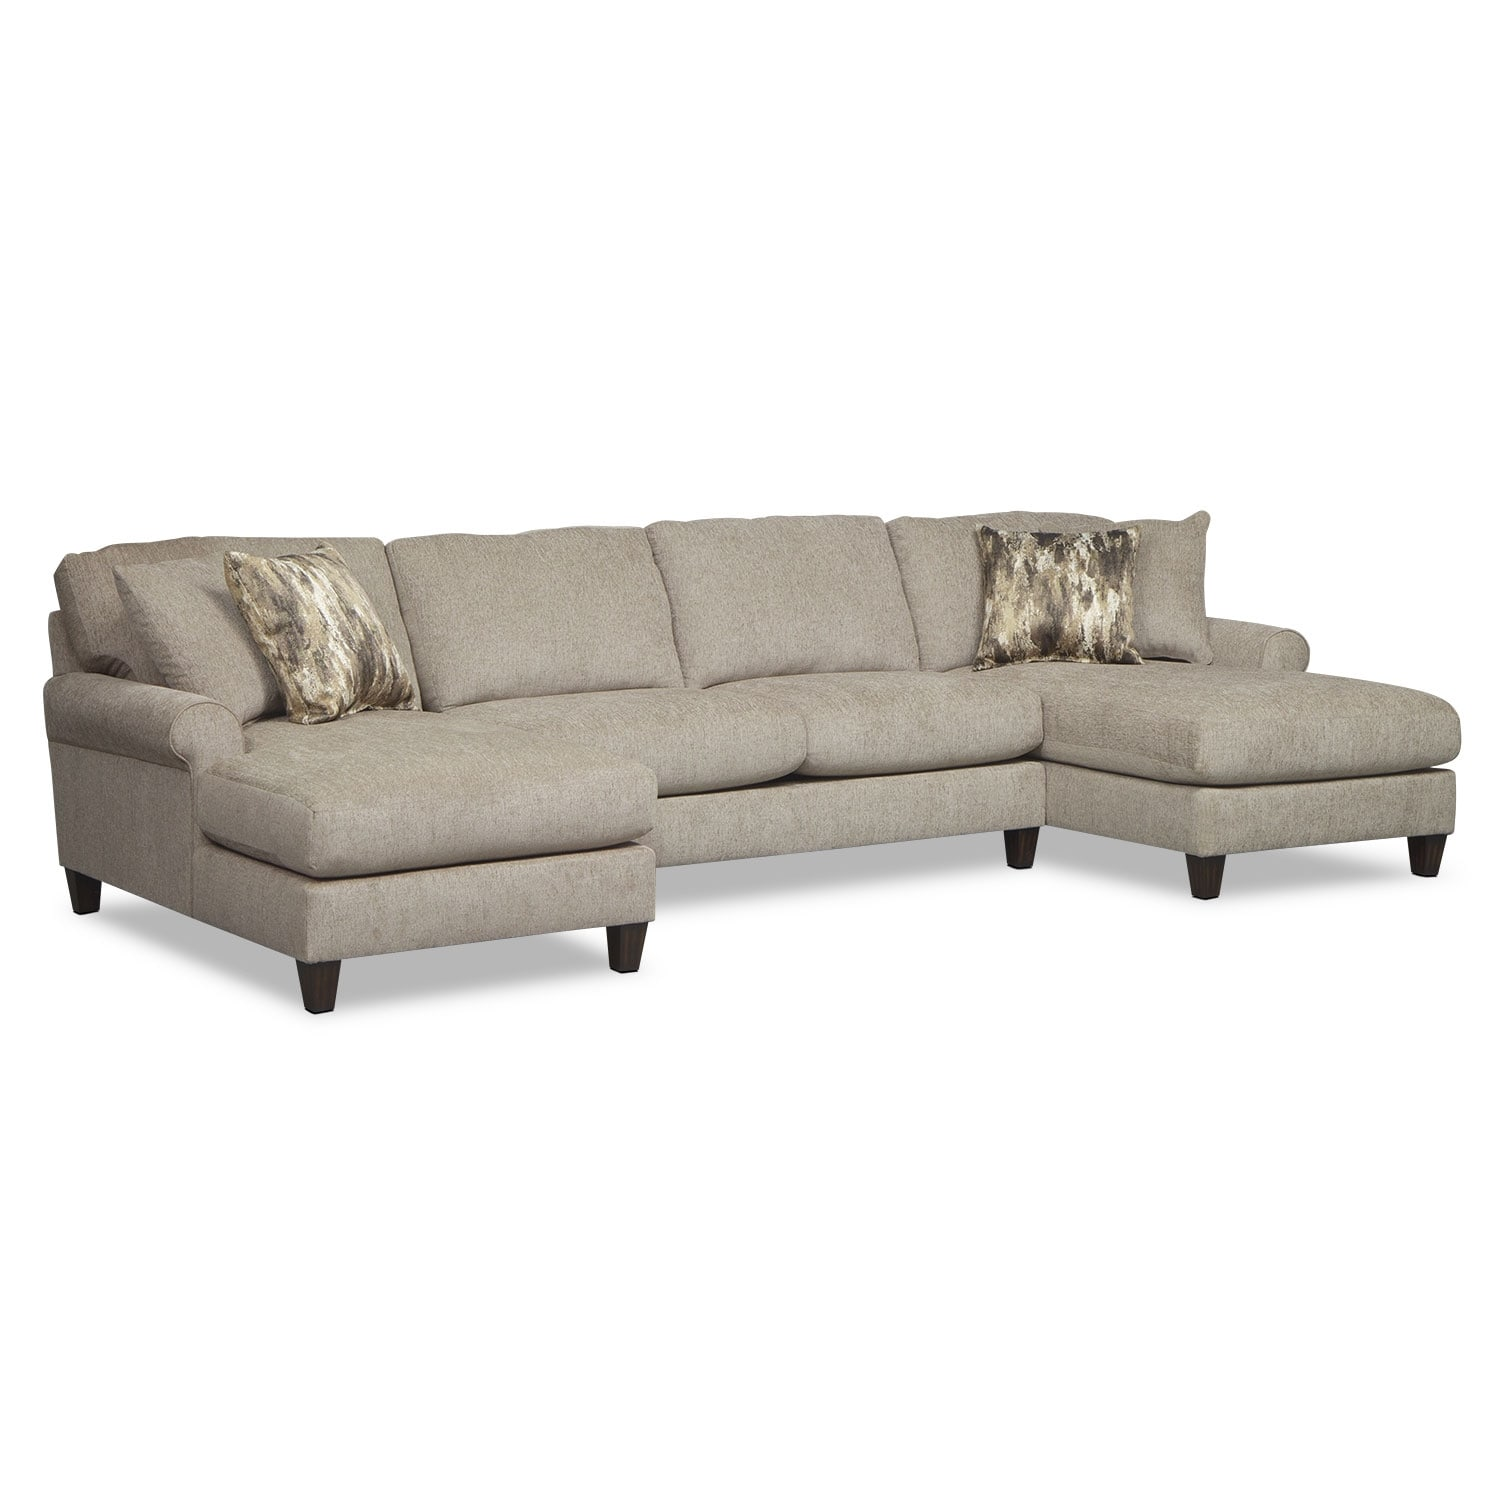 Living Room Chaises Karma 3 Piece Sectional With 2 Chaises Mink Value City Furniture